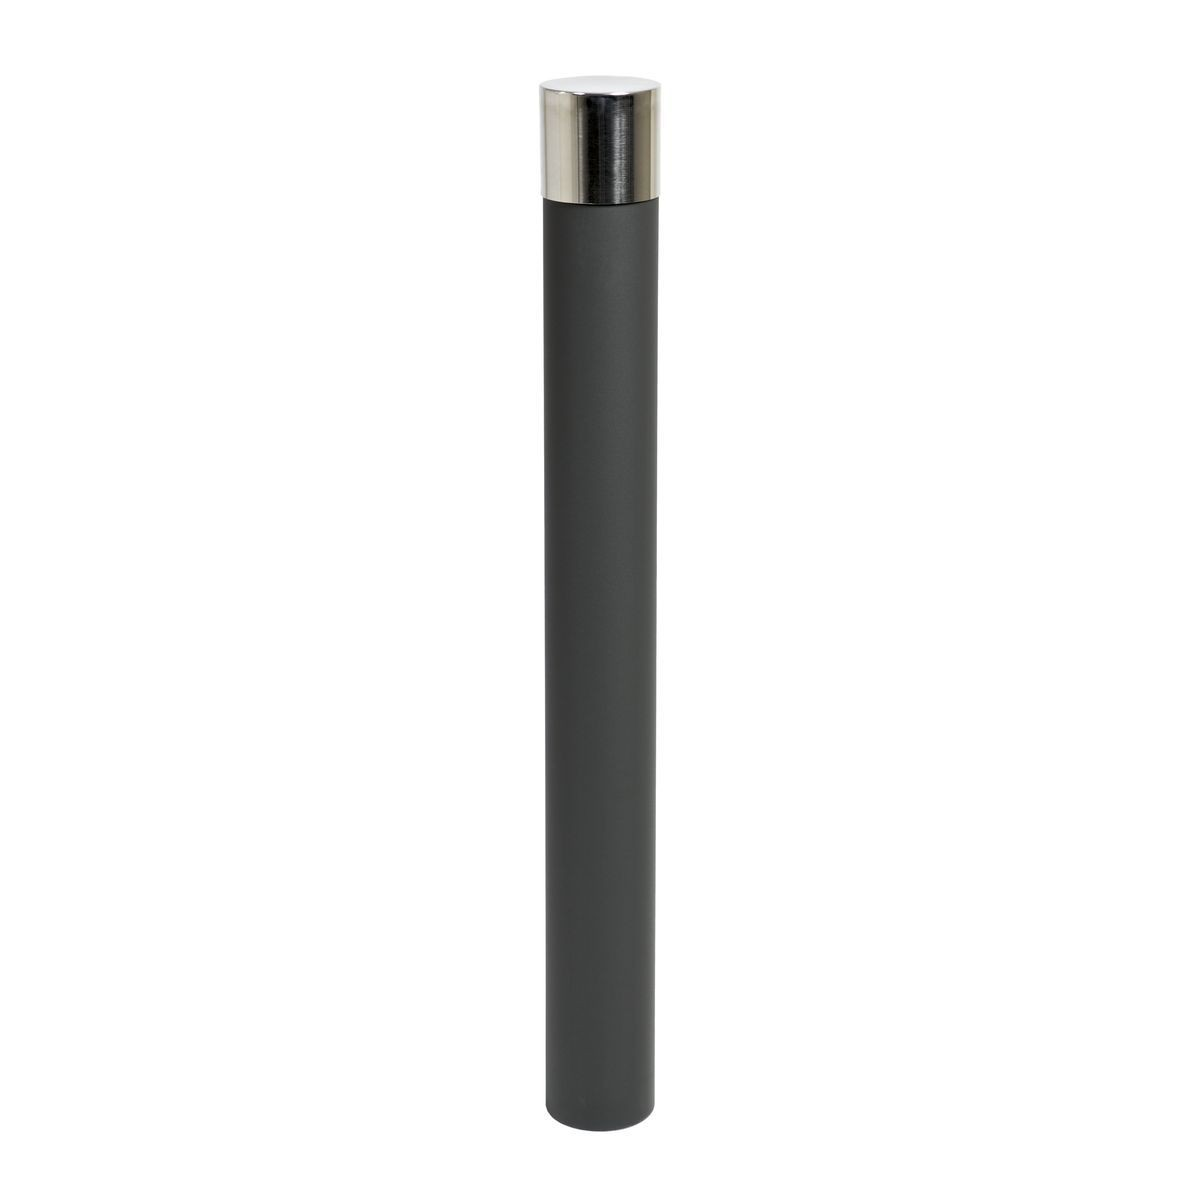 Sant Cugat Bollard of 1000 mm of height - C-522G